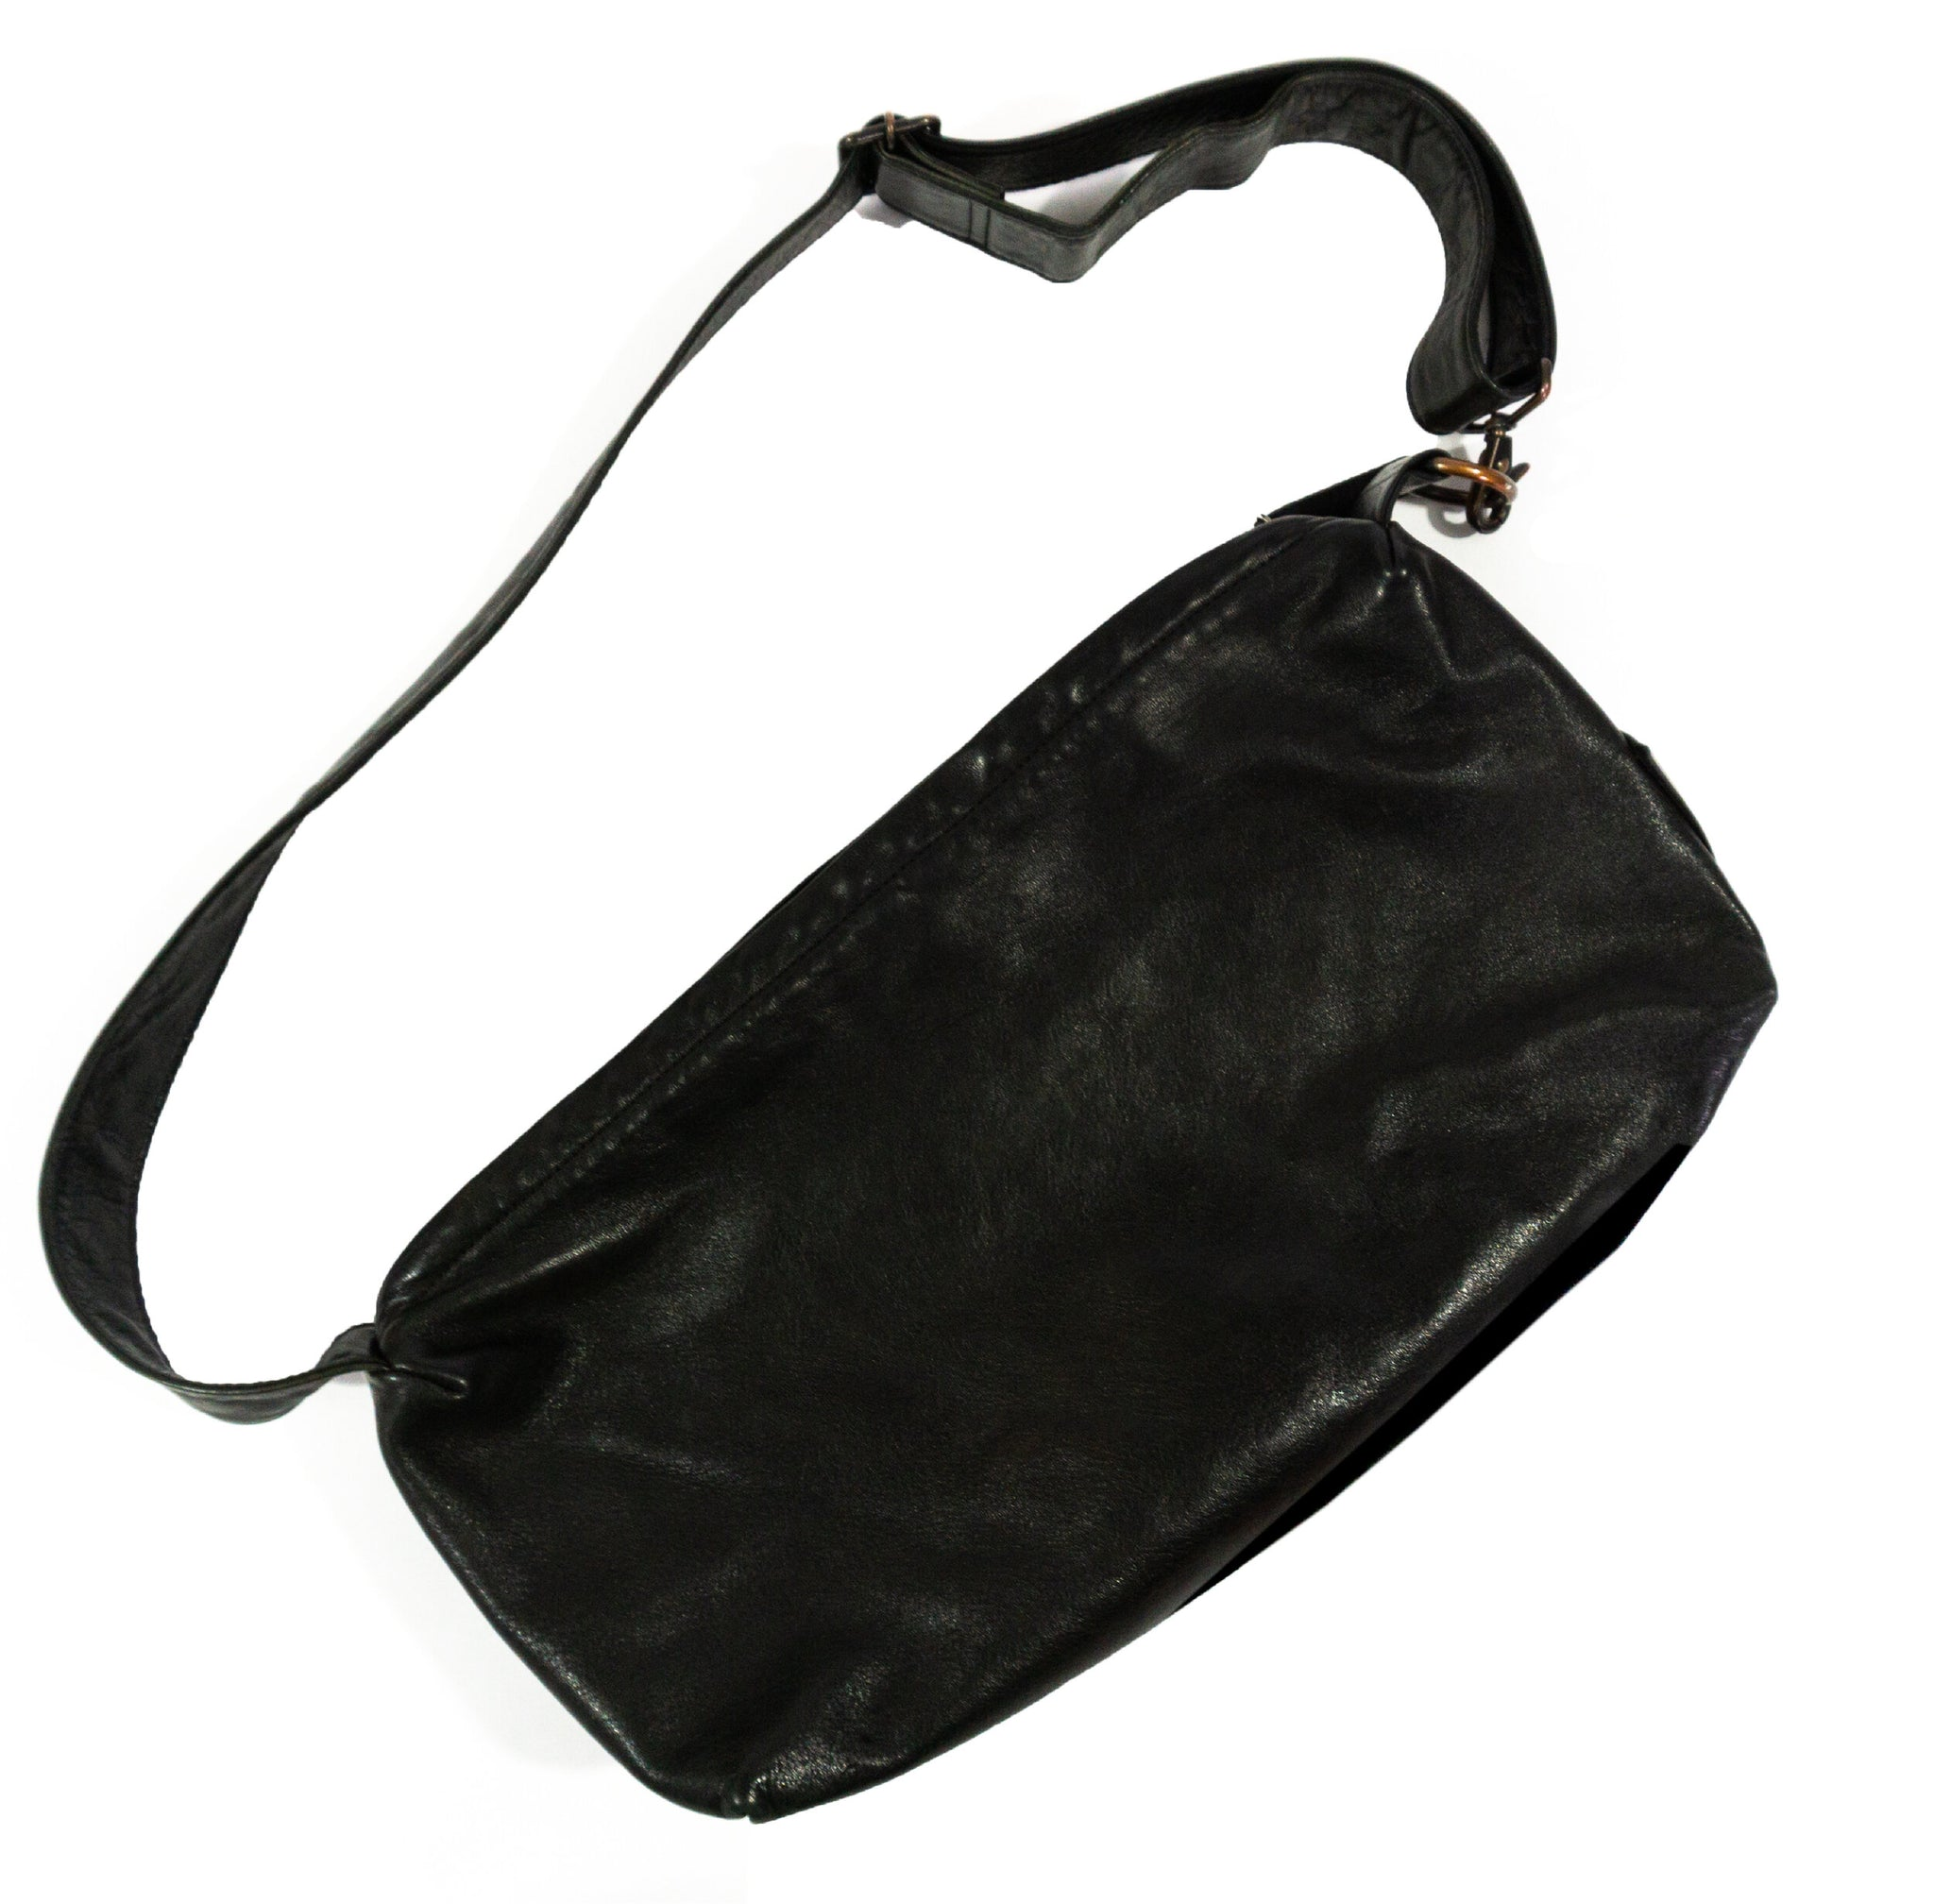 YOHJI YAMAMOTO POUR HOMME HORSE LEATHER BAG WITH ADJUSTABLE STRAP AW1998